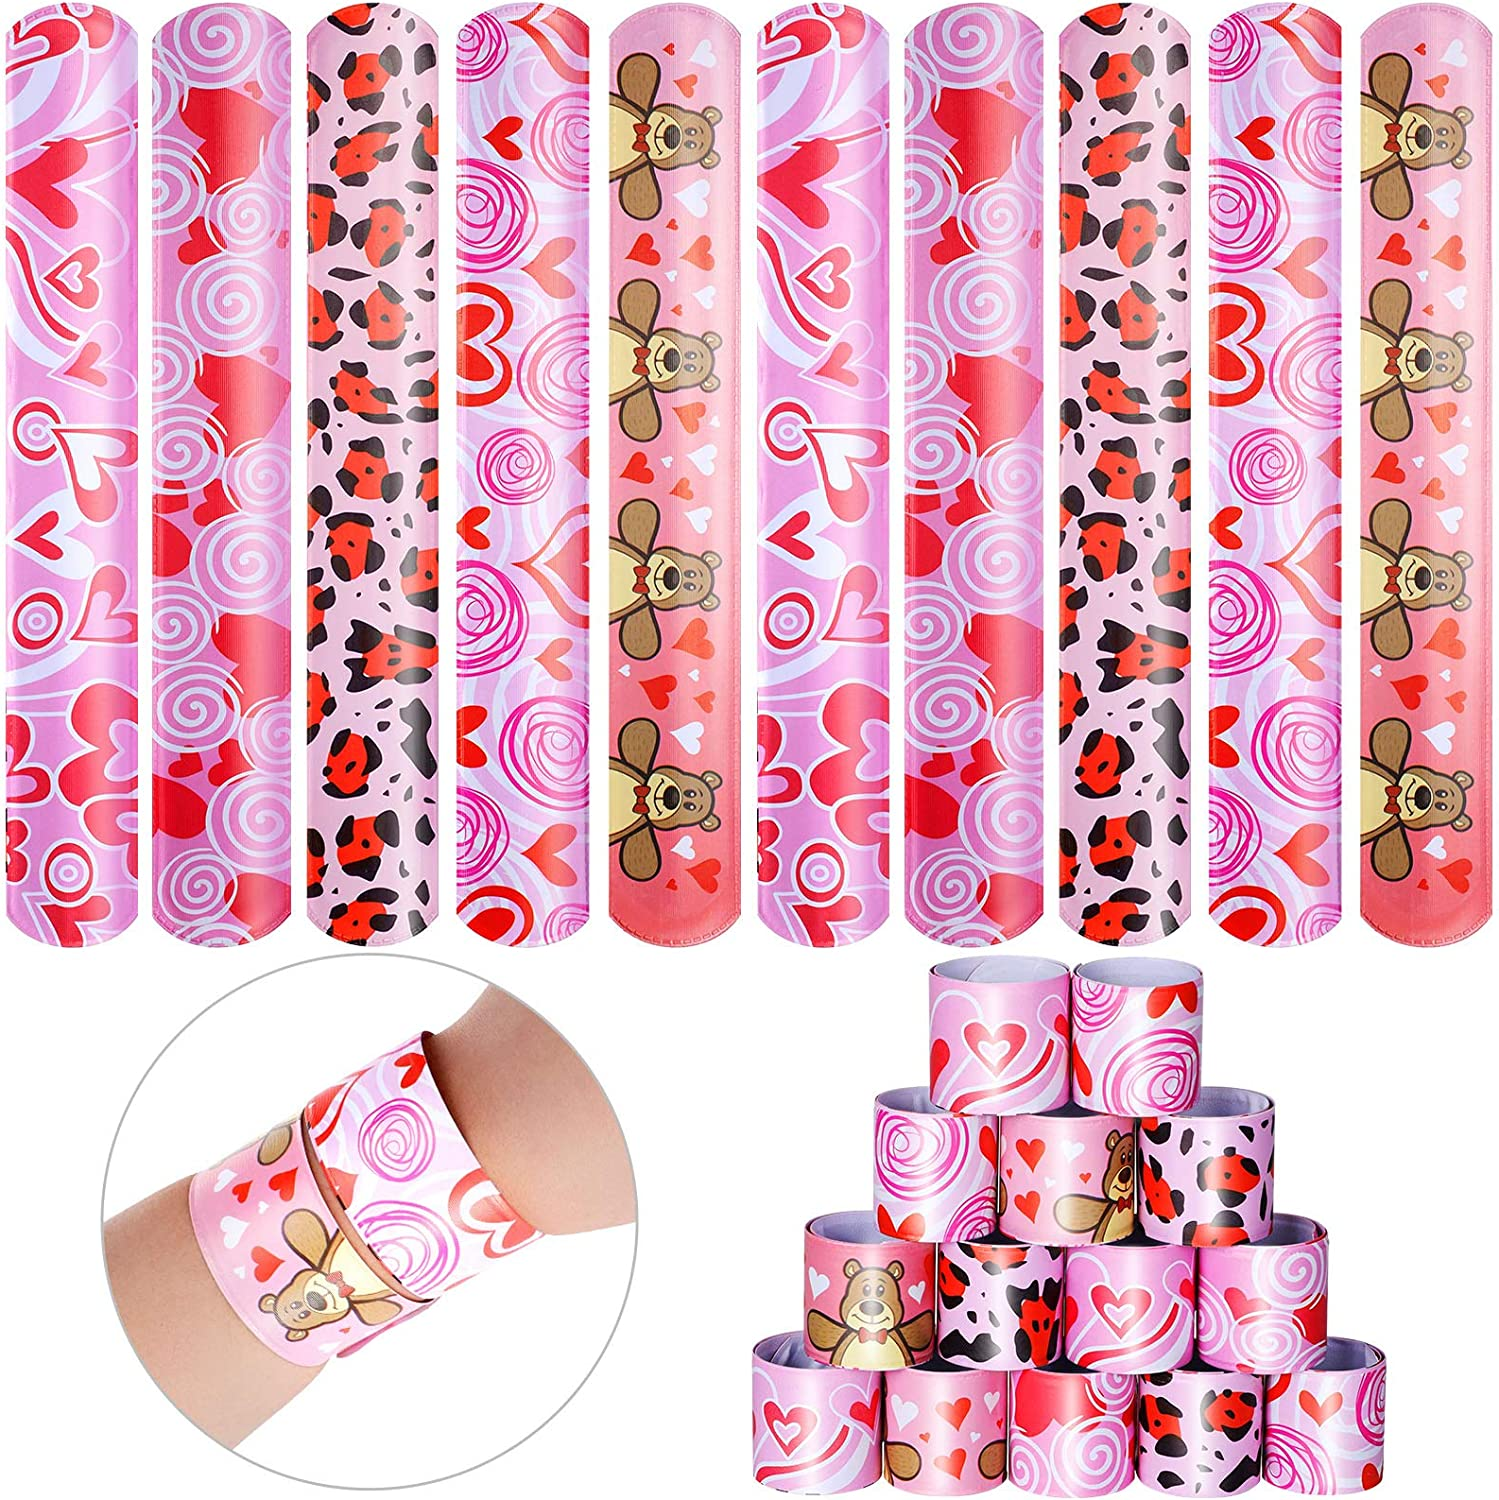 40 Pieces Valentine's Day Slap Printed New Orleans Mall Heart Bracelets Bear Charlotte Mall